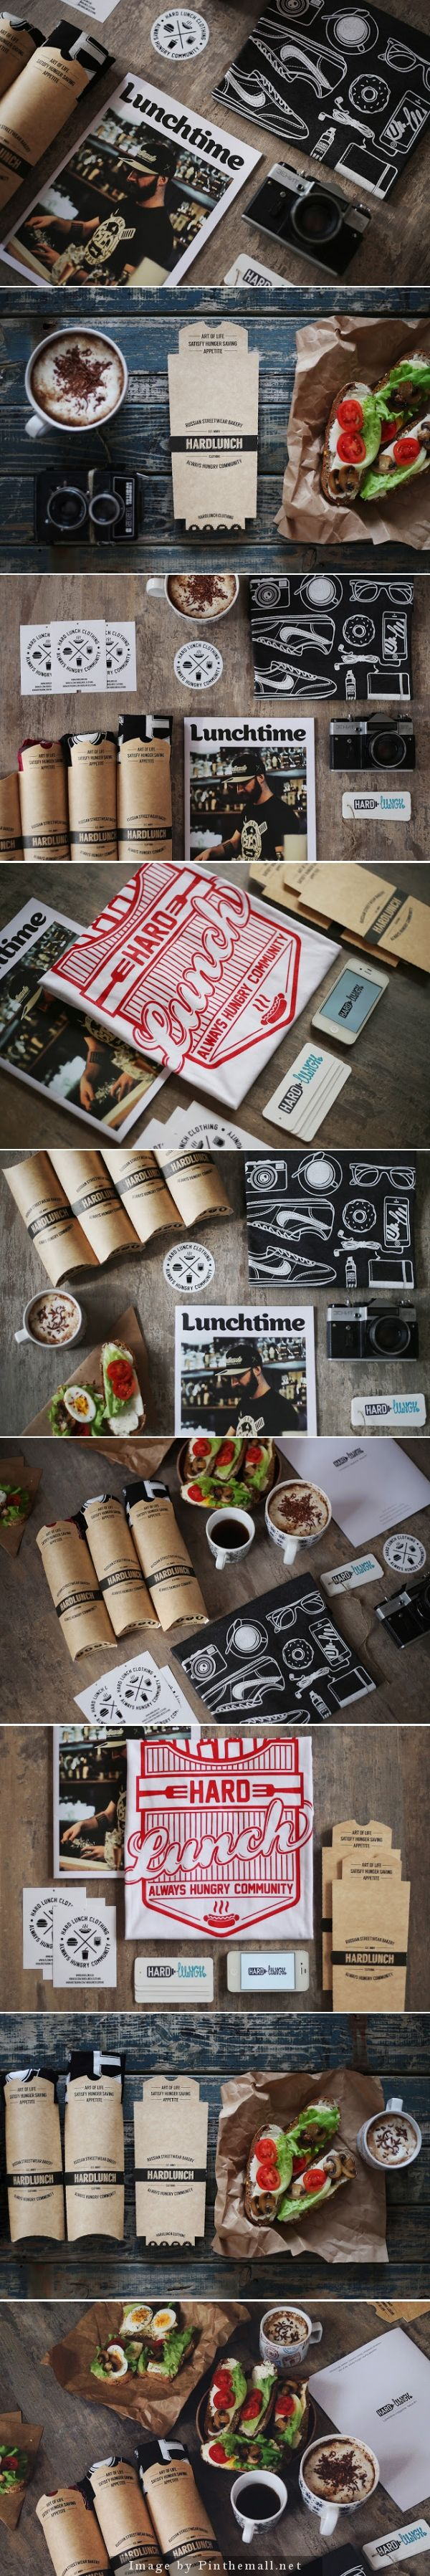 Hard Lunch T-Shirt. Lunch or apparel? #branding #identity #design (Join design group board at https://www.pinterest.com/aldenchong/just-a-board-of-designs/)